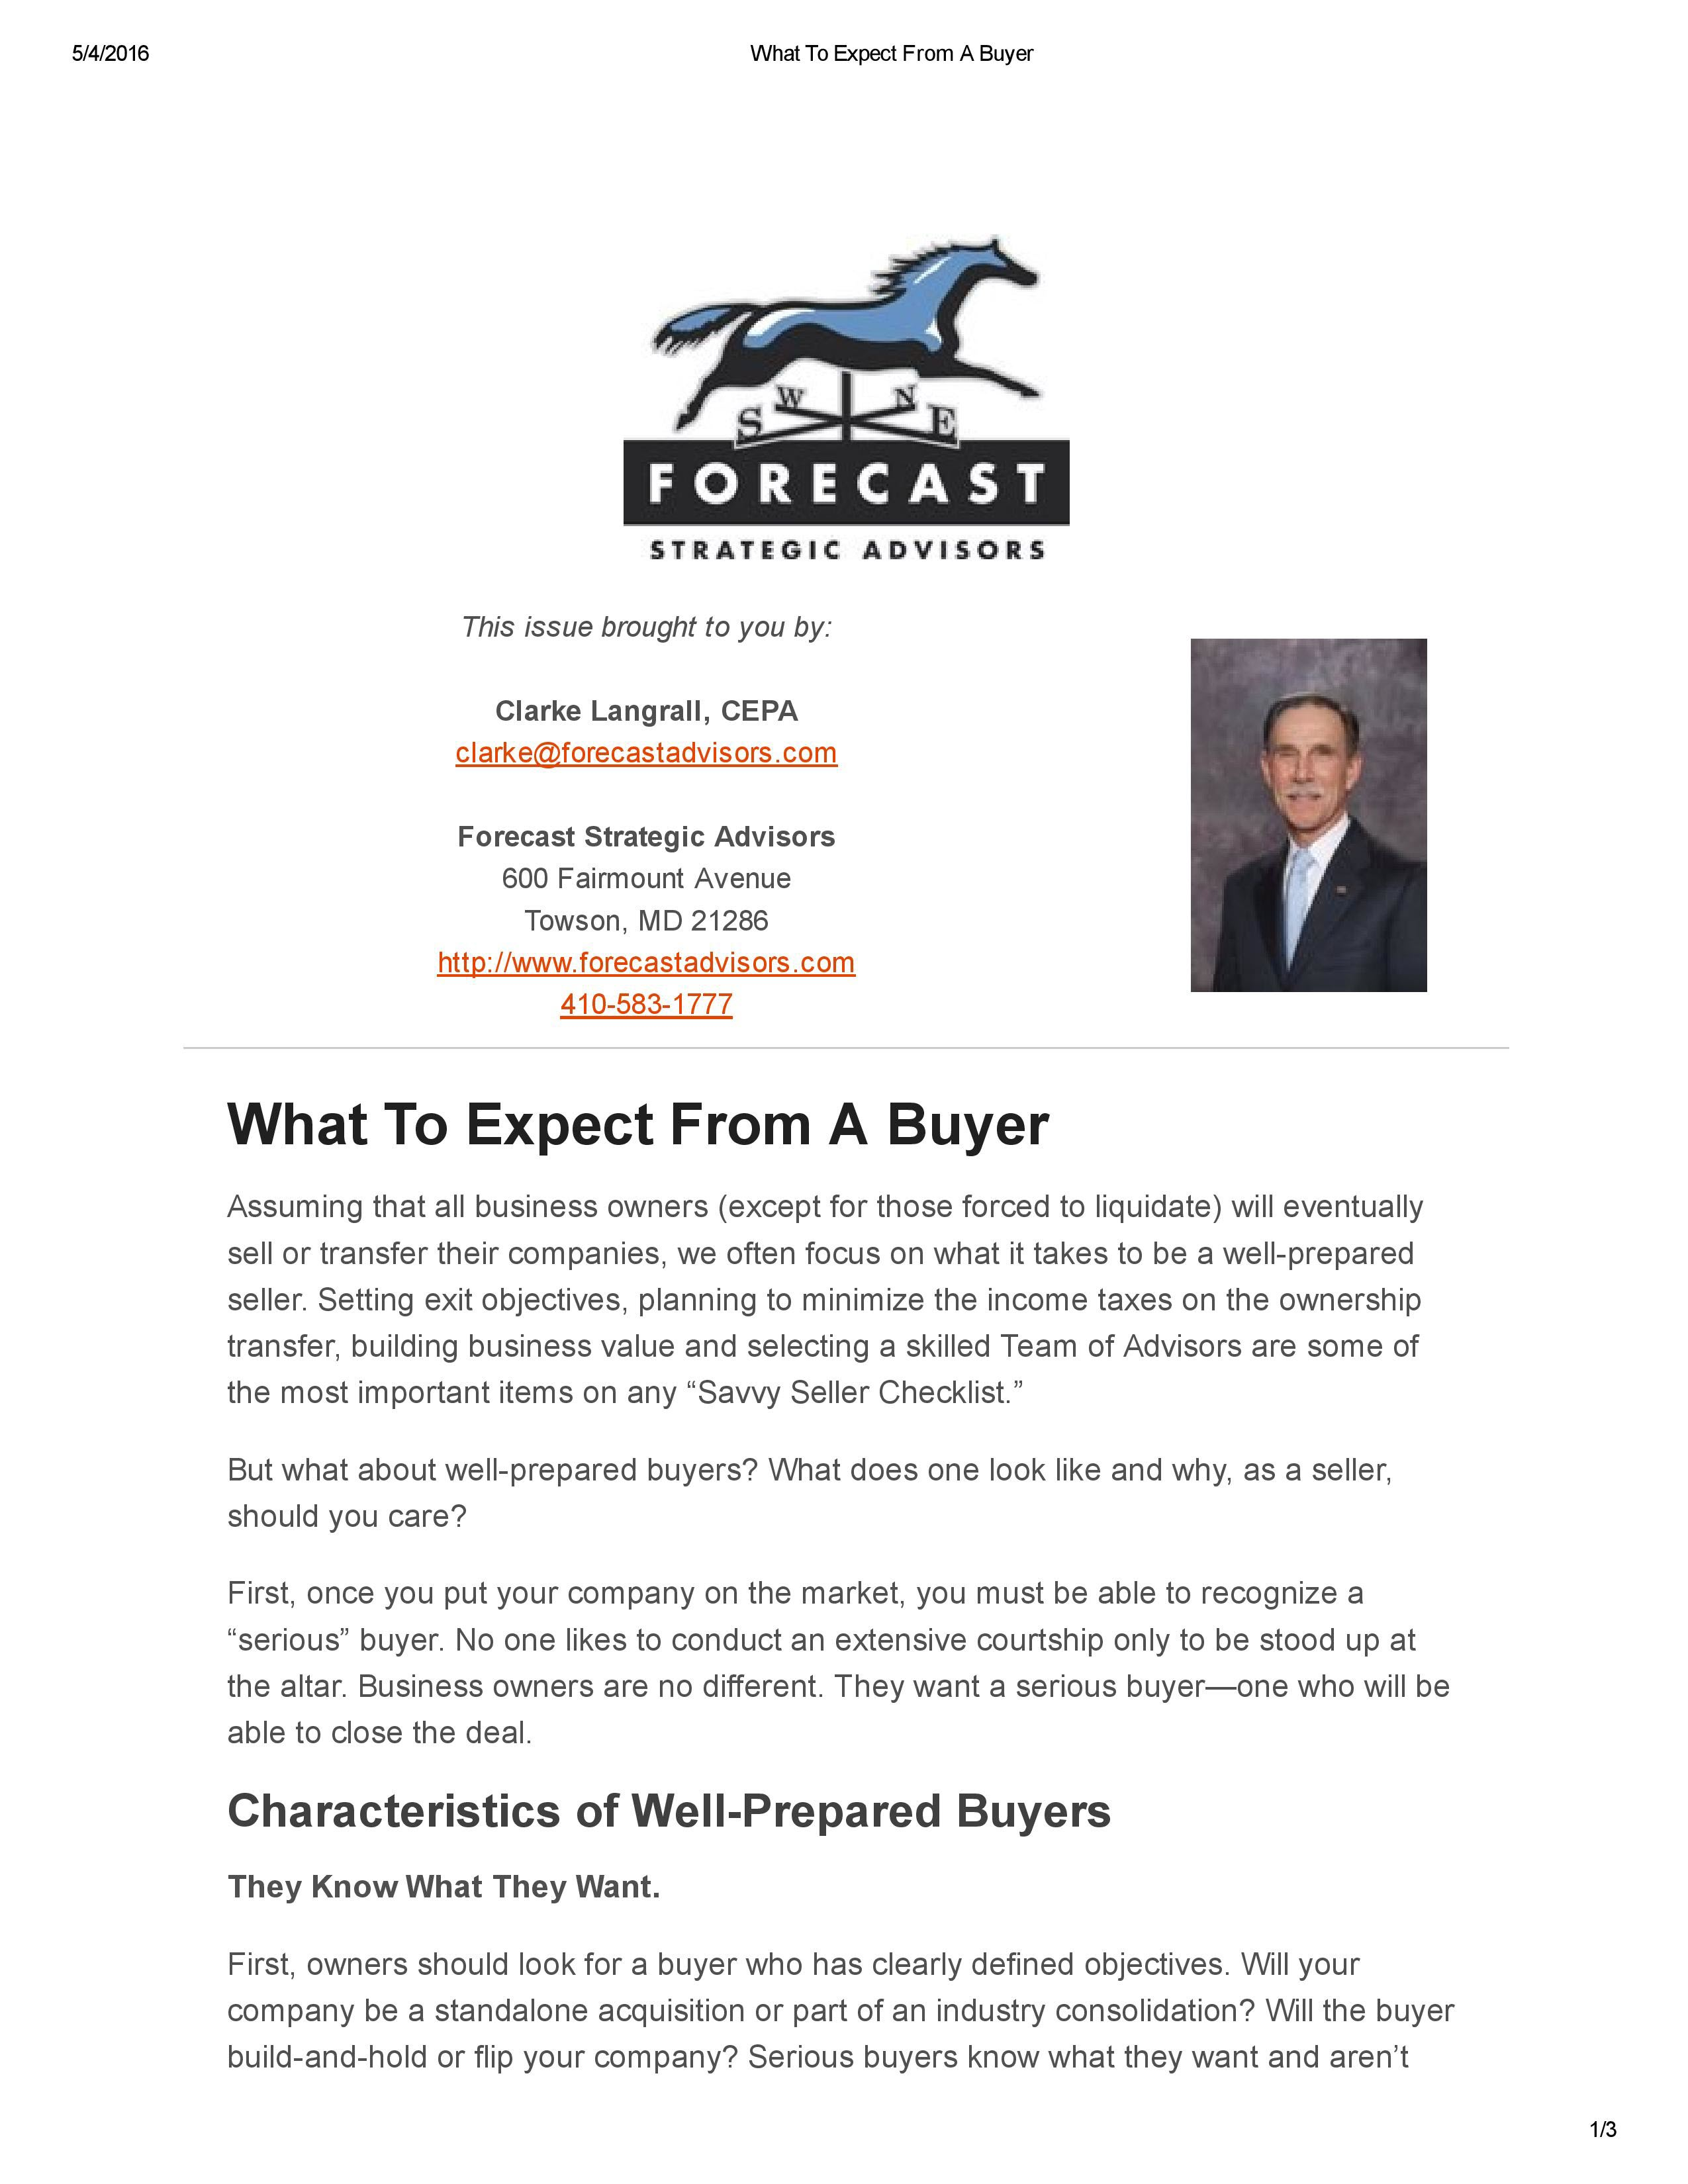 What To Expect From A Buyer_Forecast Strategic Advisors April 216 Newsletter-page-001